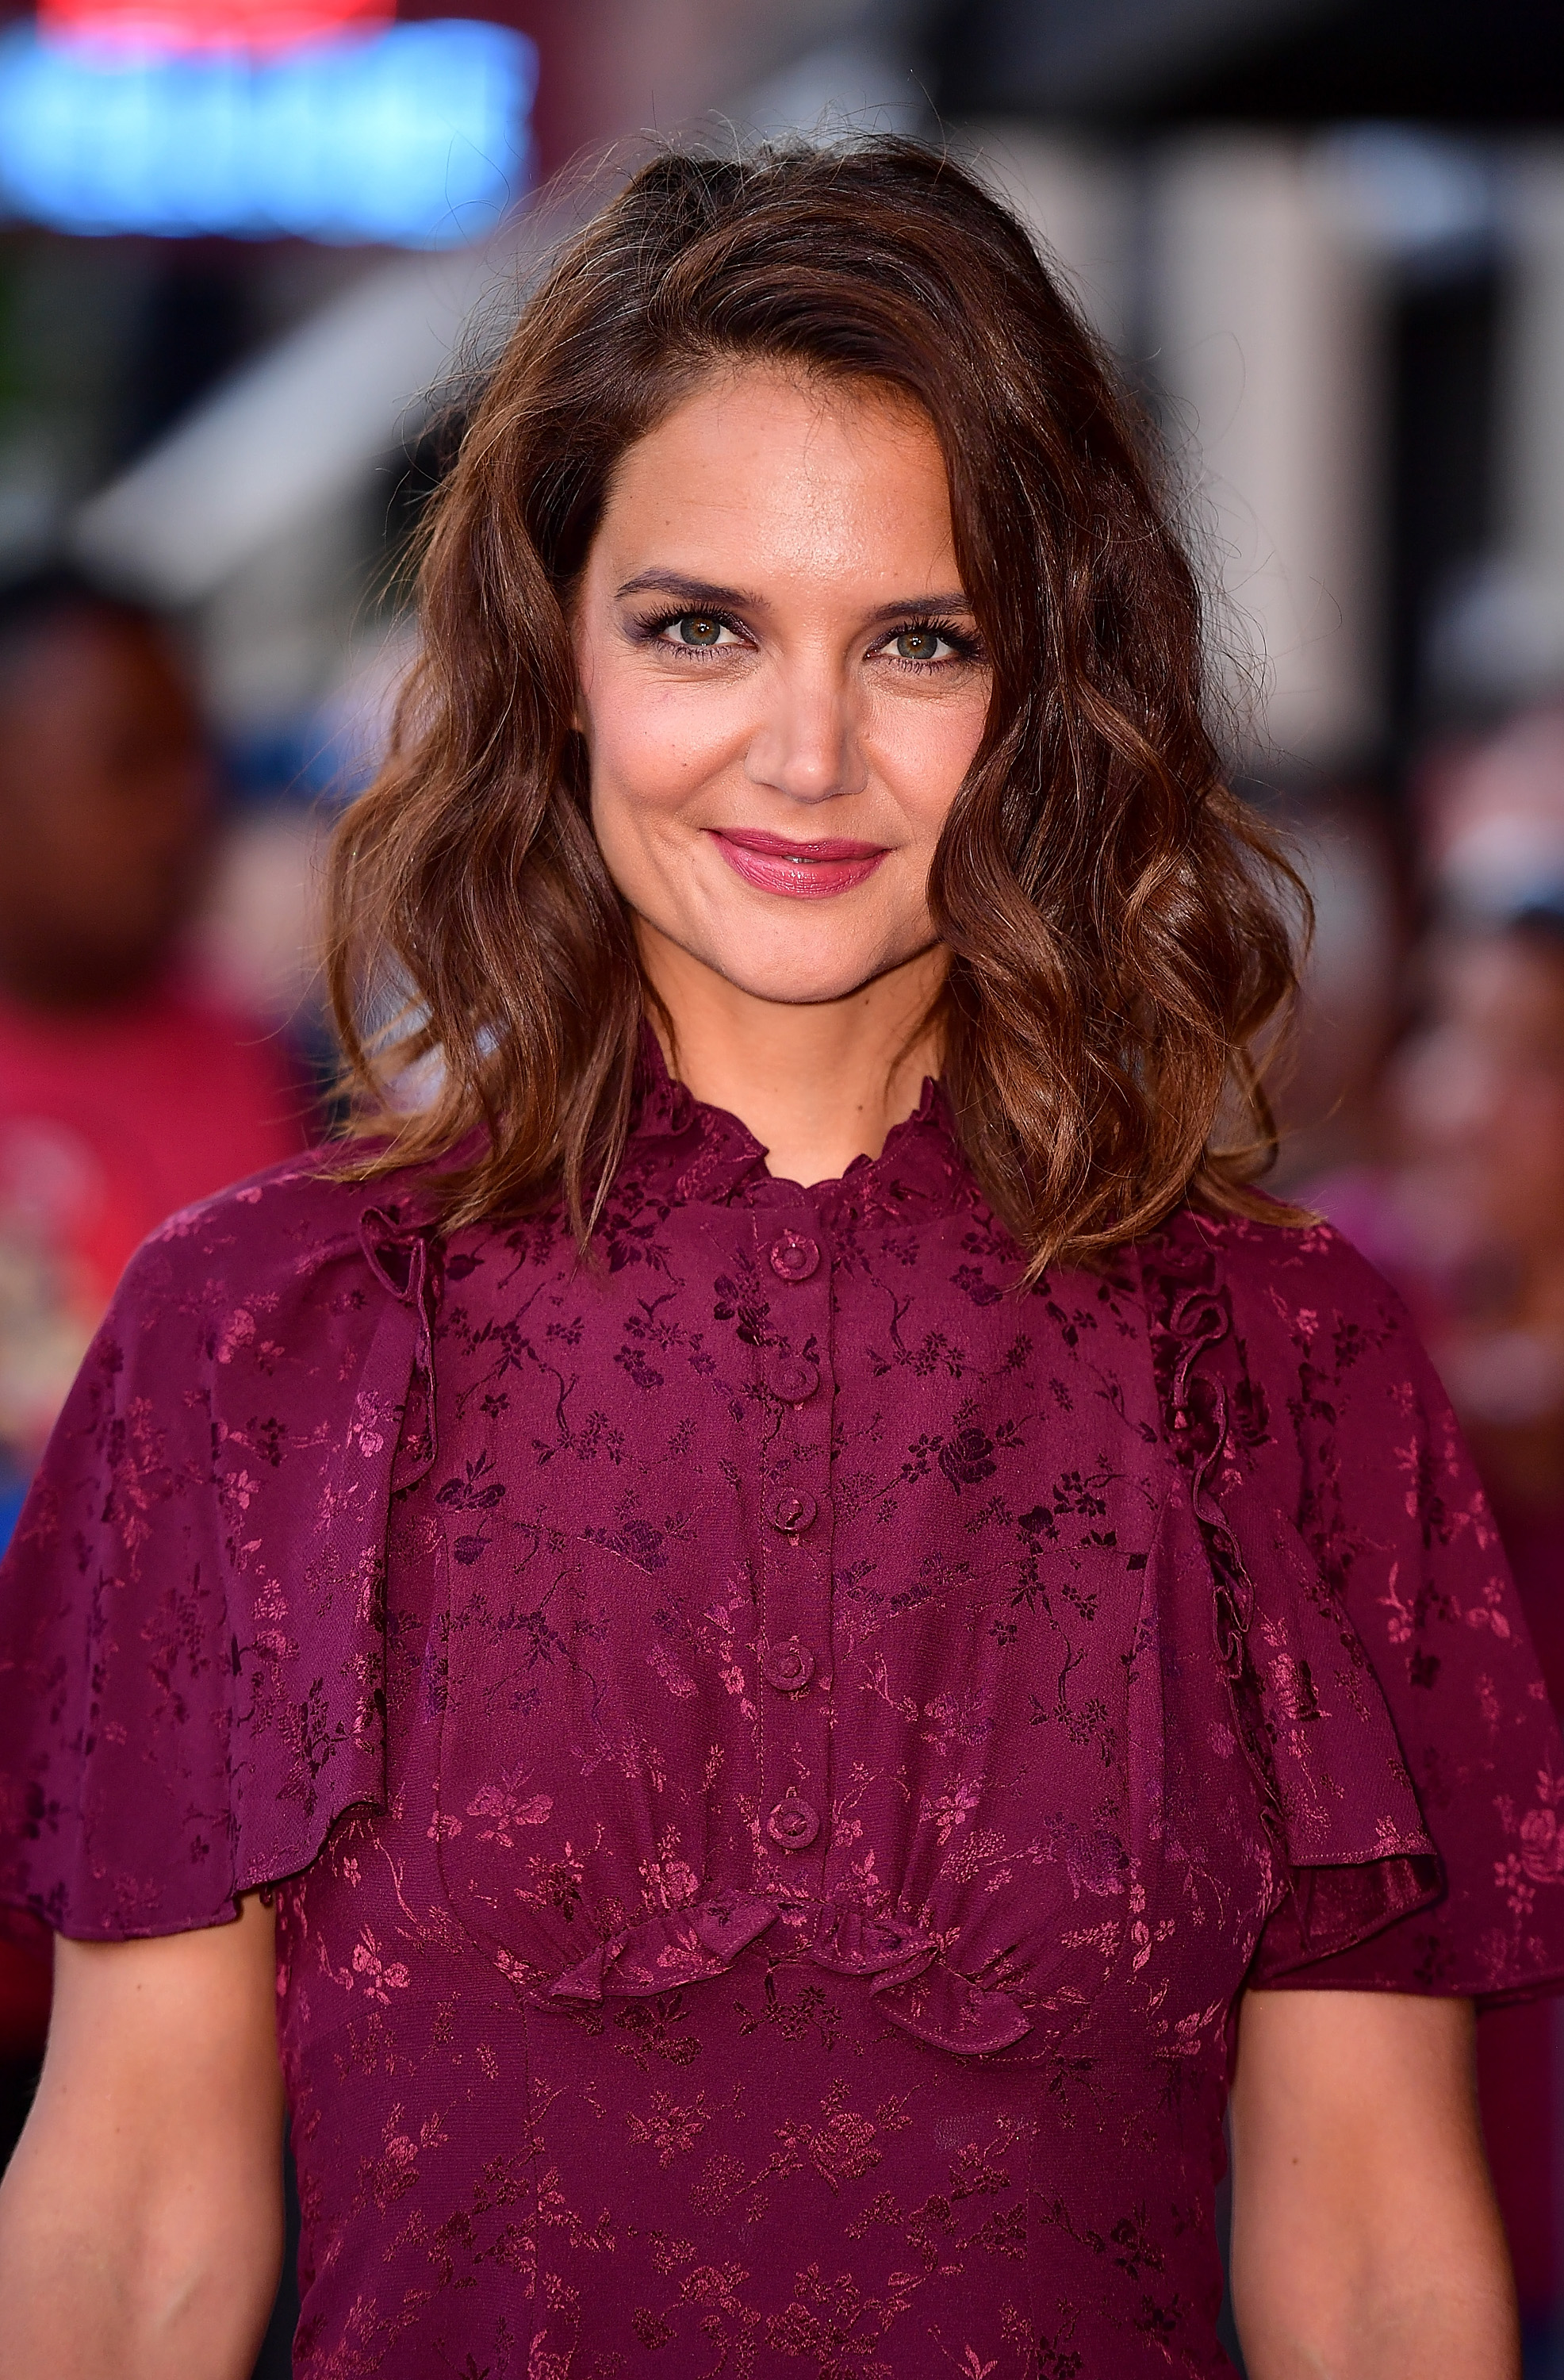 Katie Holmes' tousled waves and plum lip look is THE ...